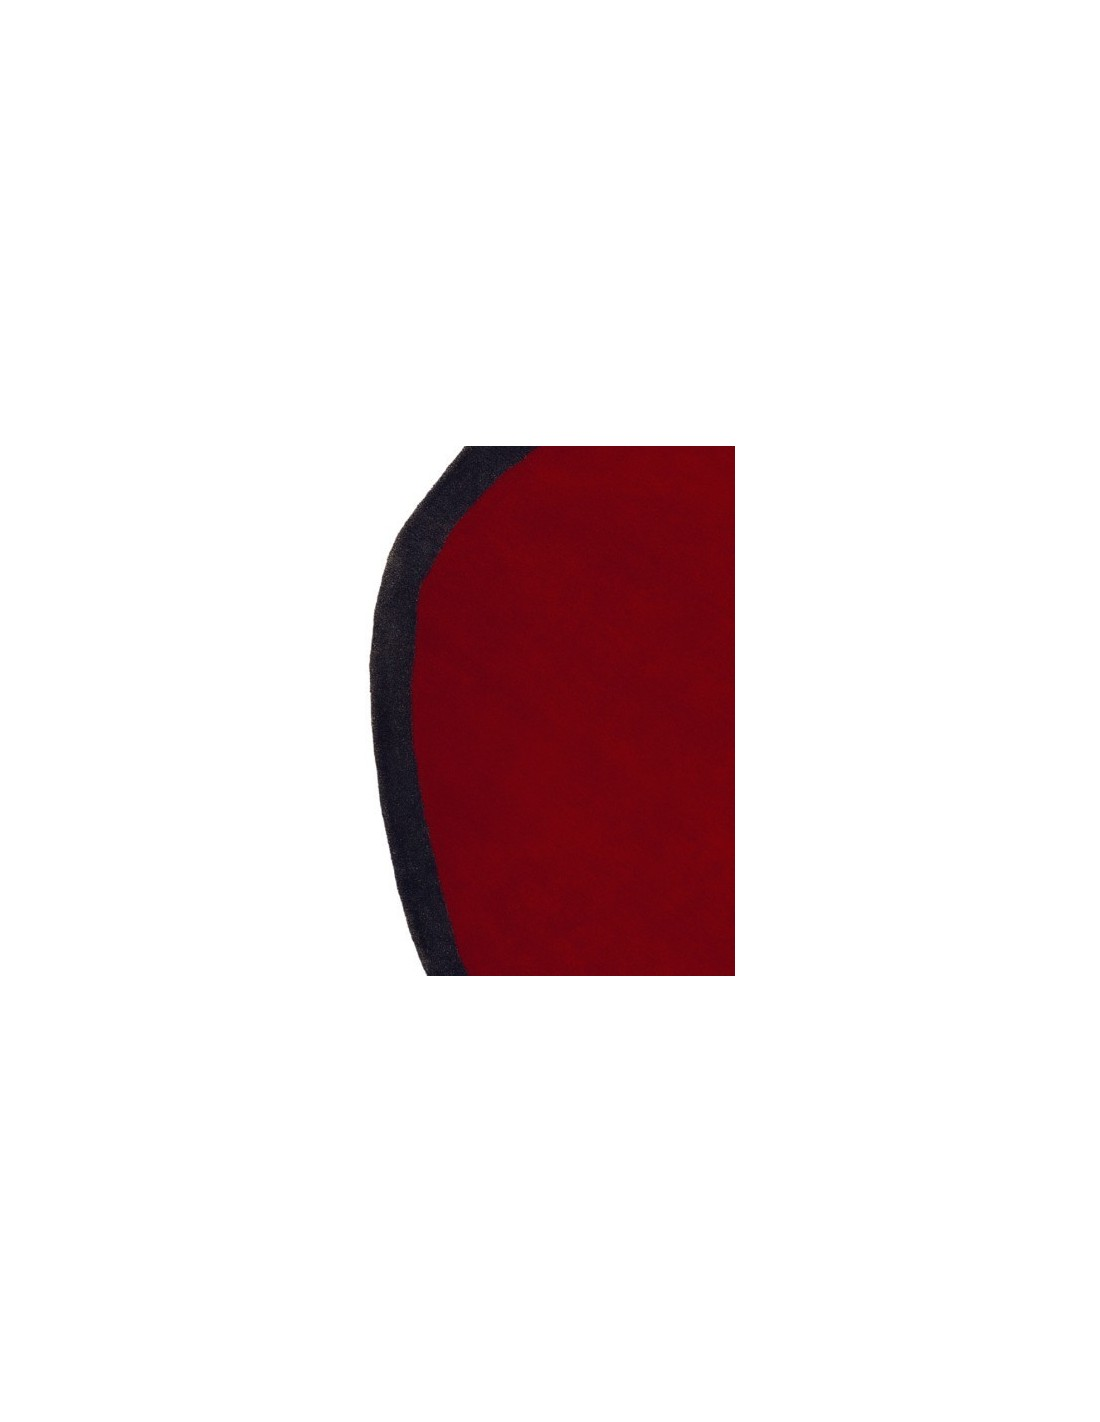 contemporary rug rug nanimarquina aros red designed by. Black Bedroom Furniture Sets. Home Design Ideas